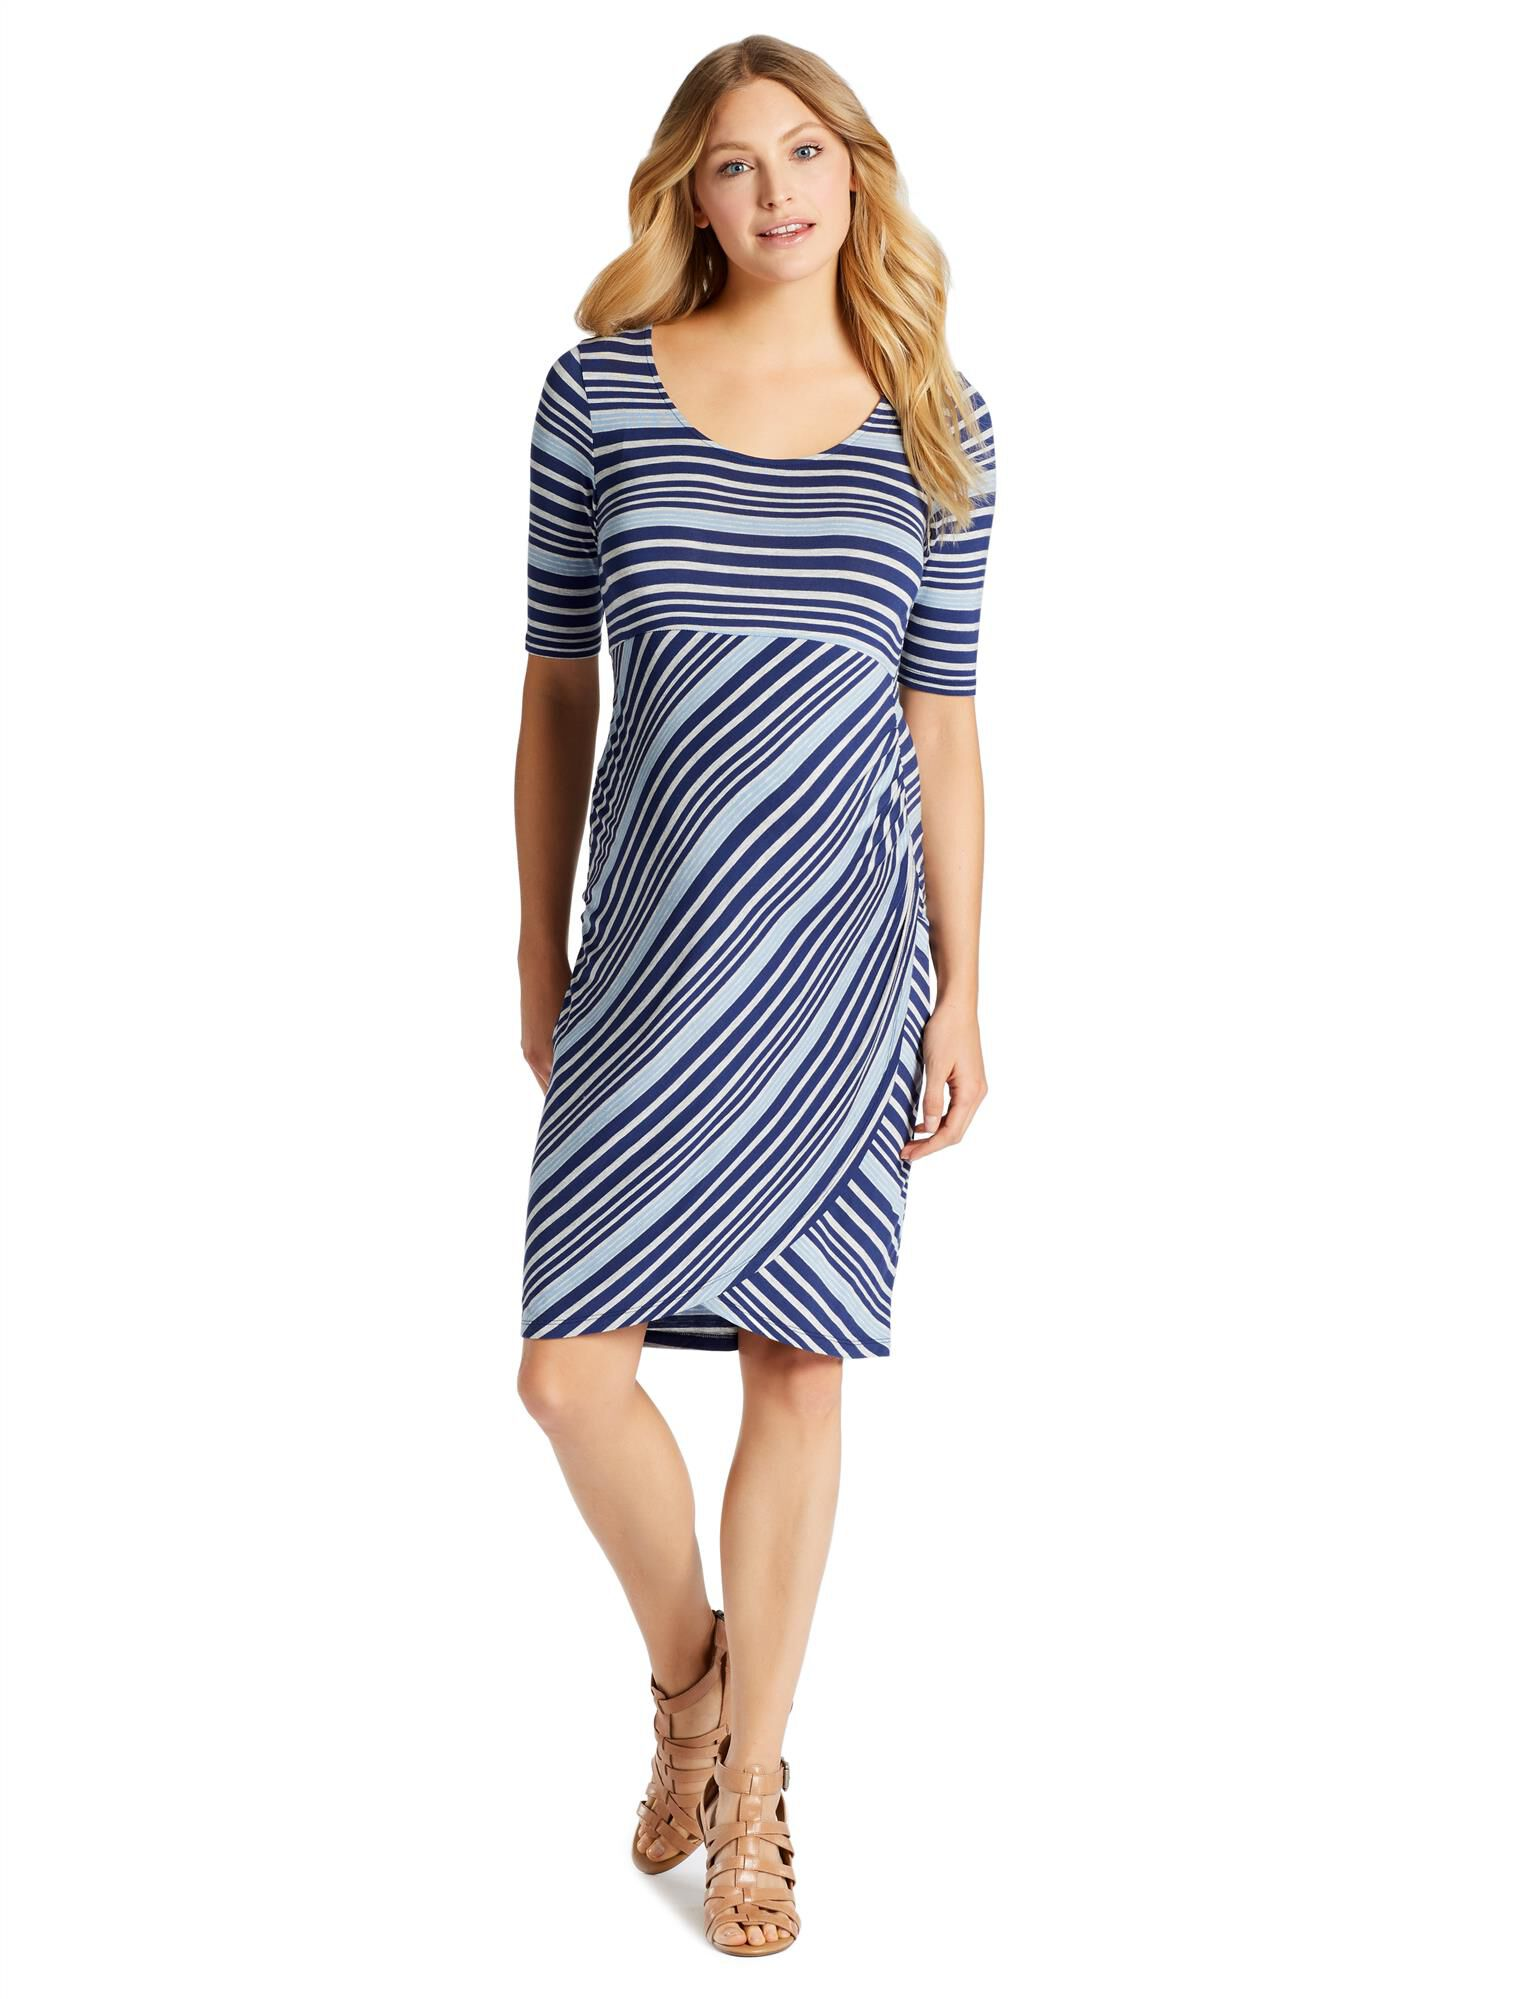 Jessica Simpson Super Soft Maternity Dress